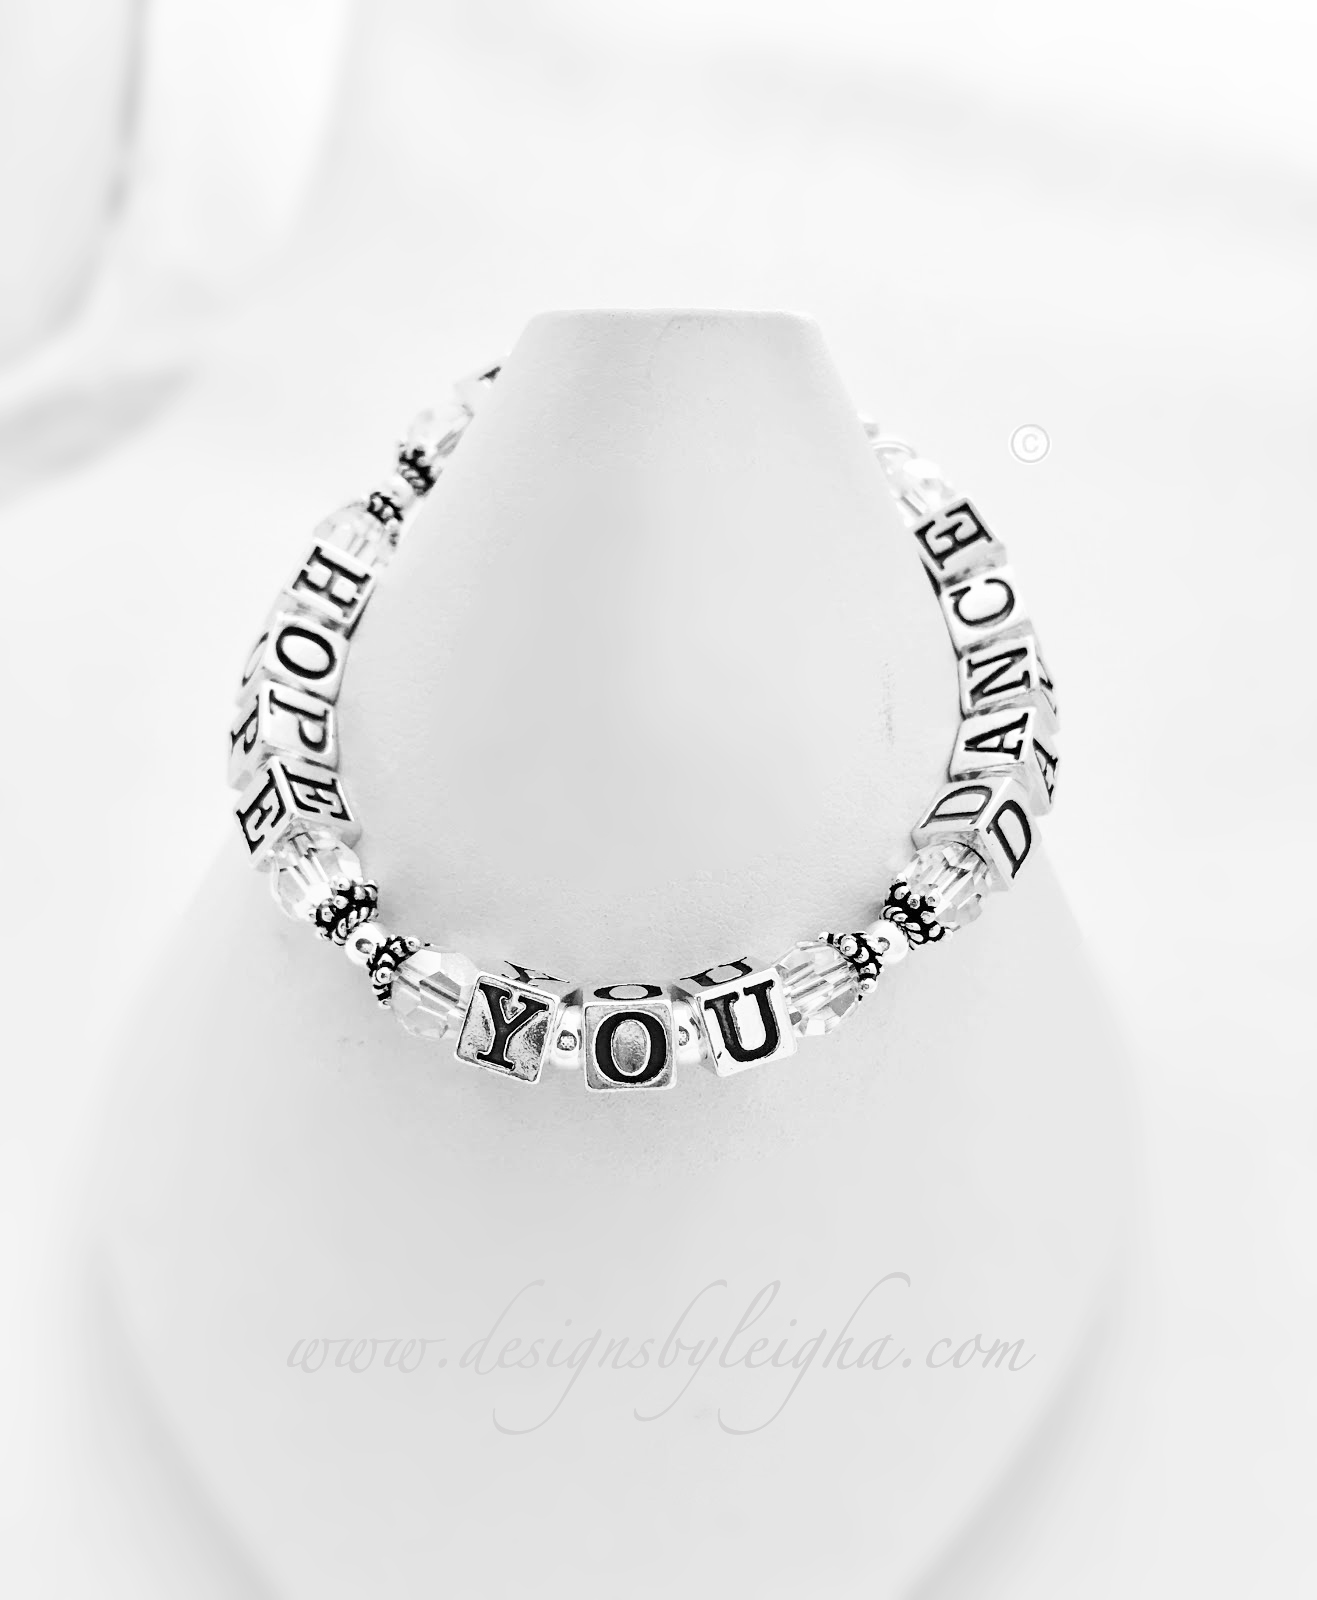 DBL-MB-1S  I HOPE YOU DANCE with April (clear) Birthstone Swarovski crystals.